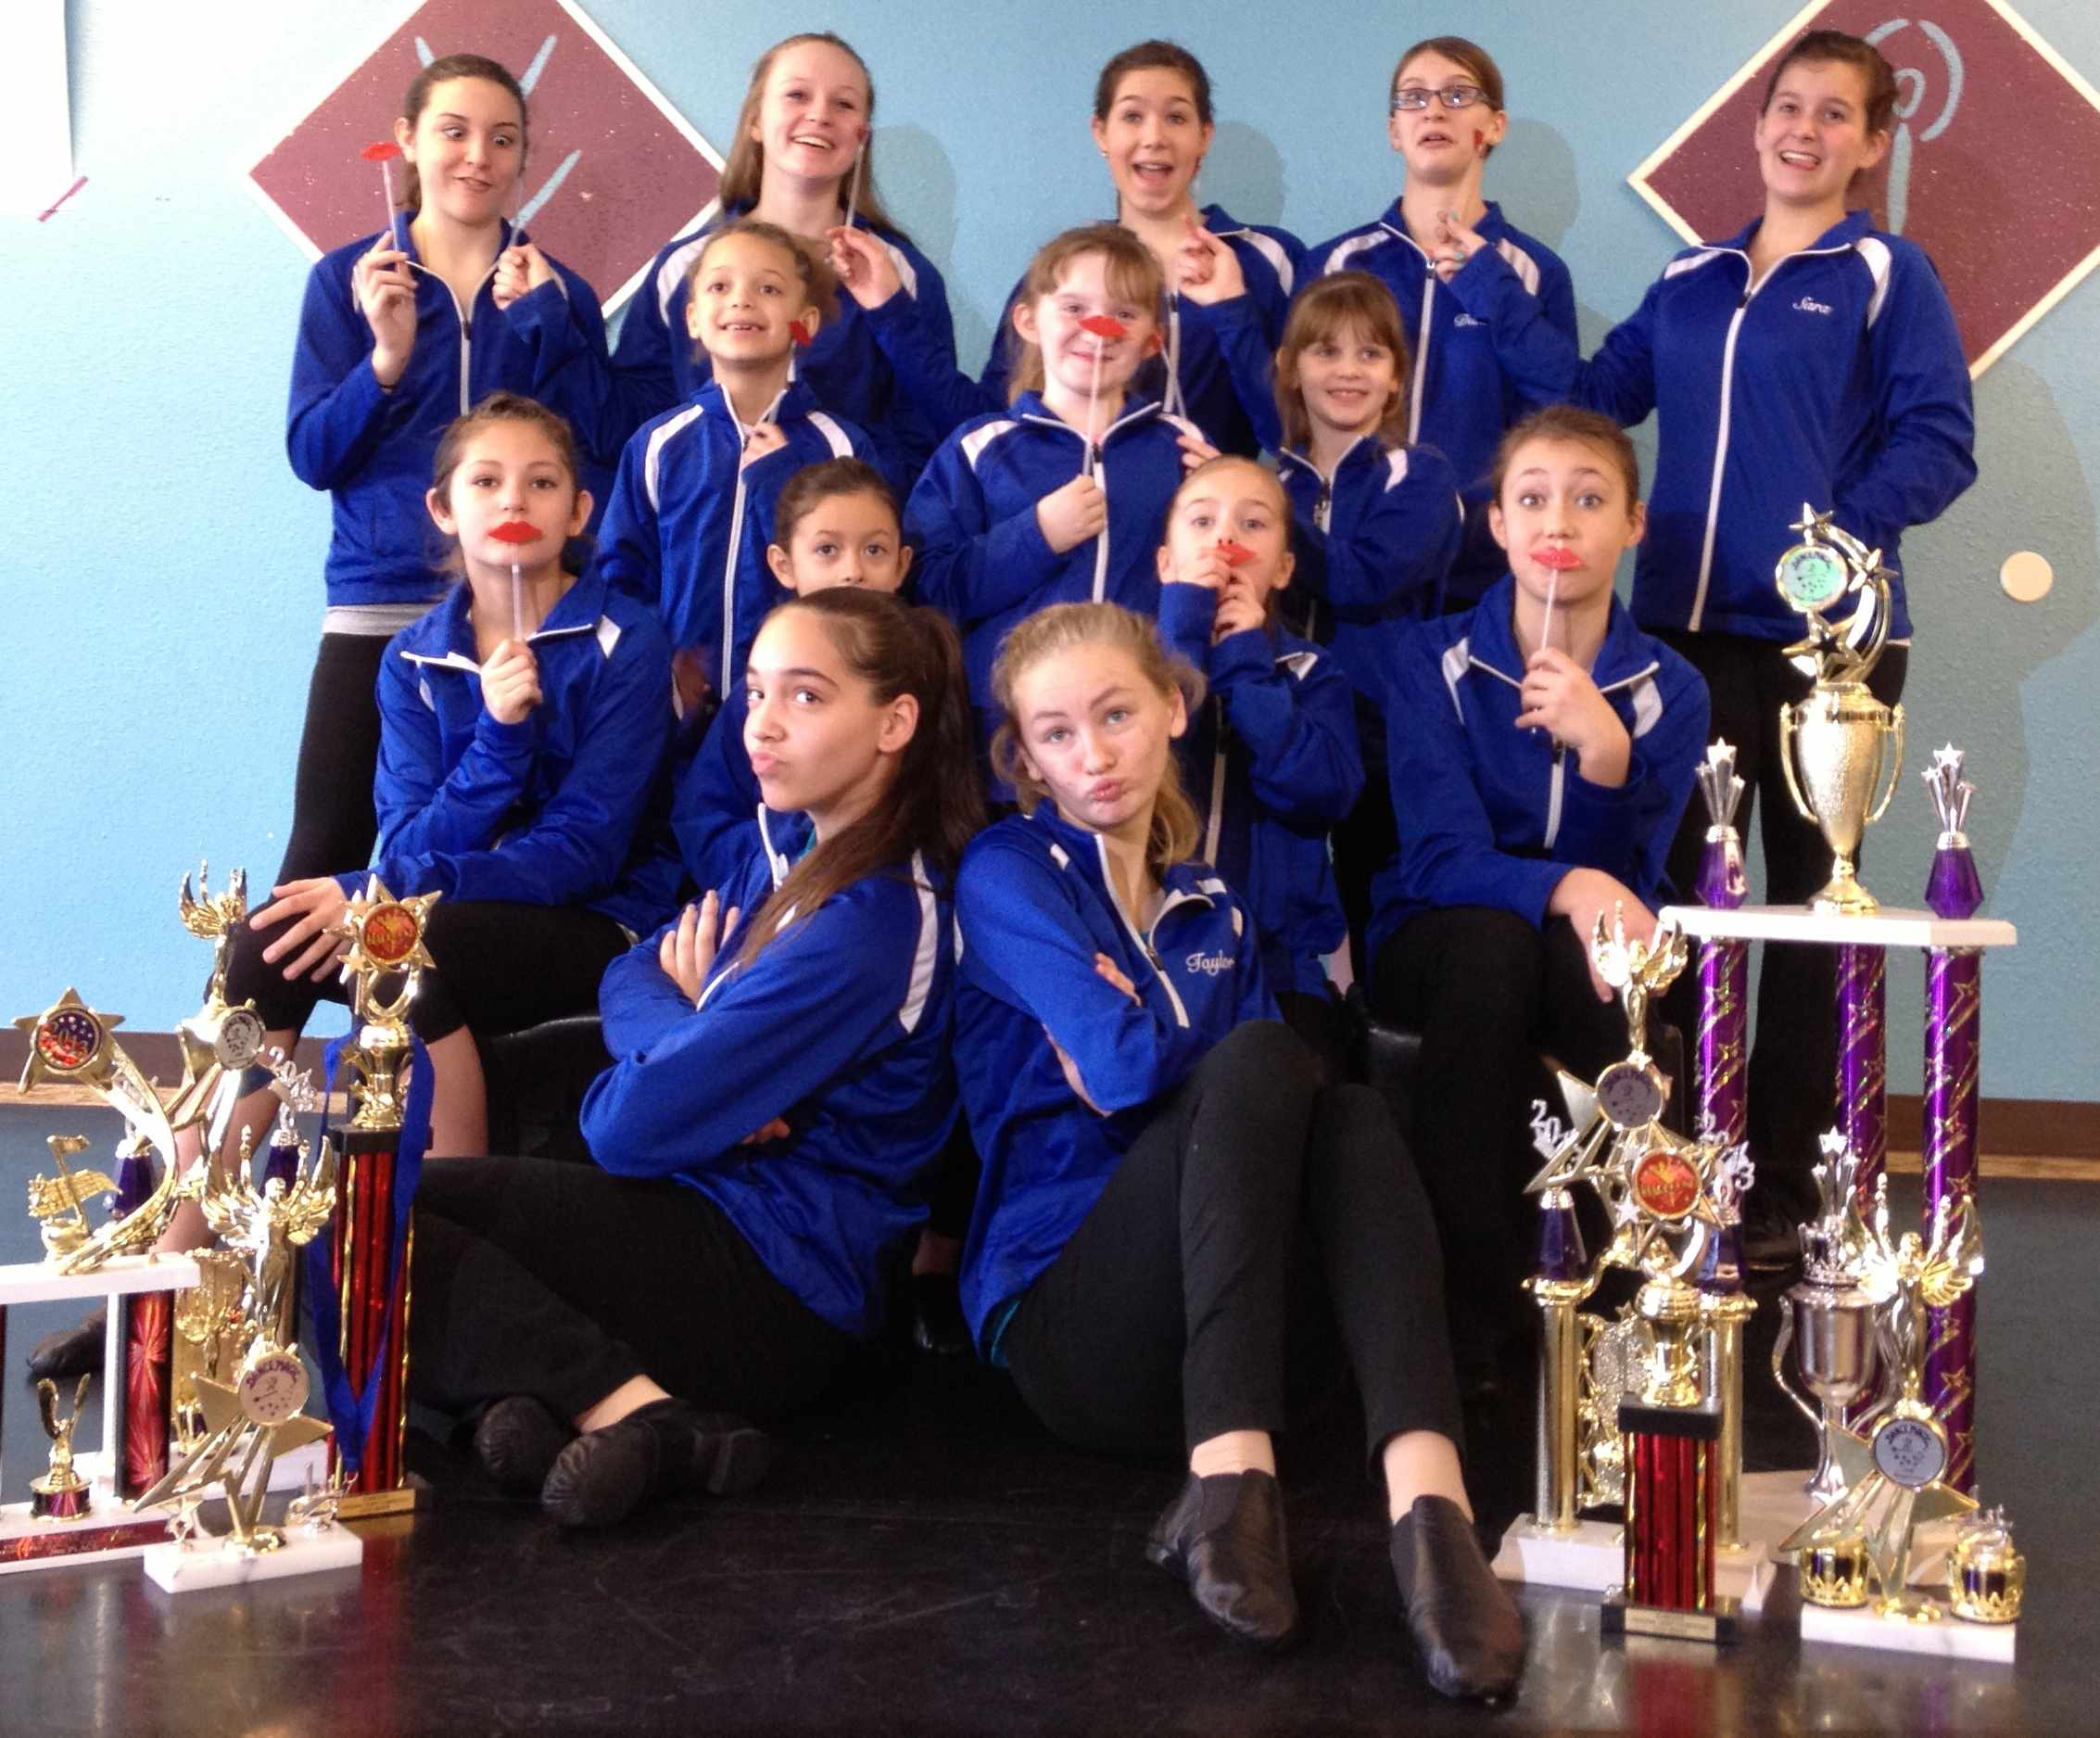 2014 Competition Team - We Love to Dance